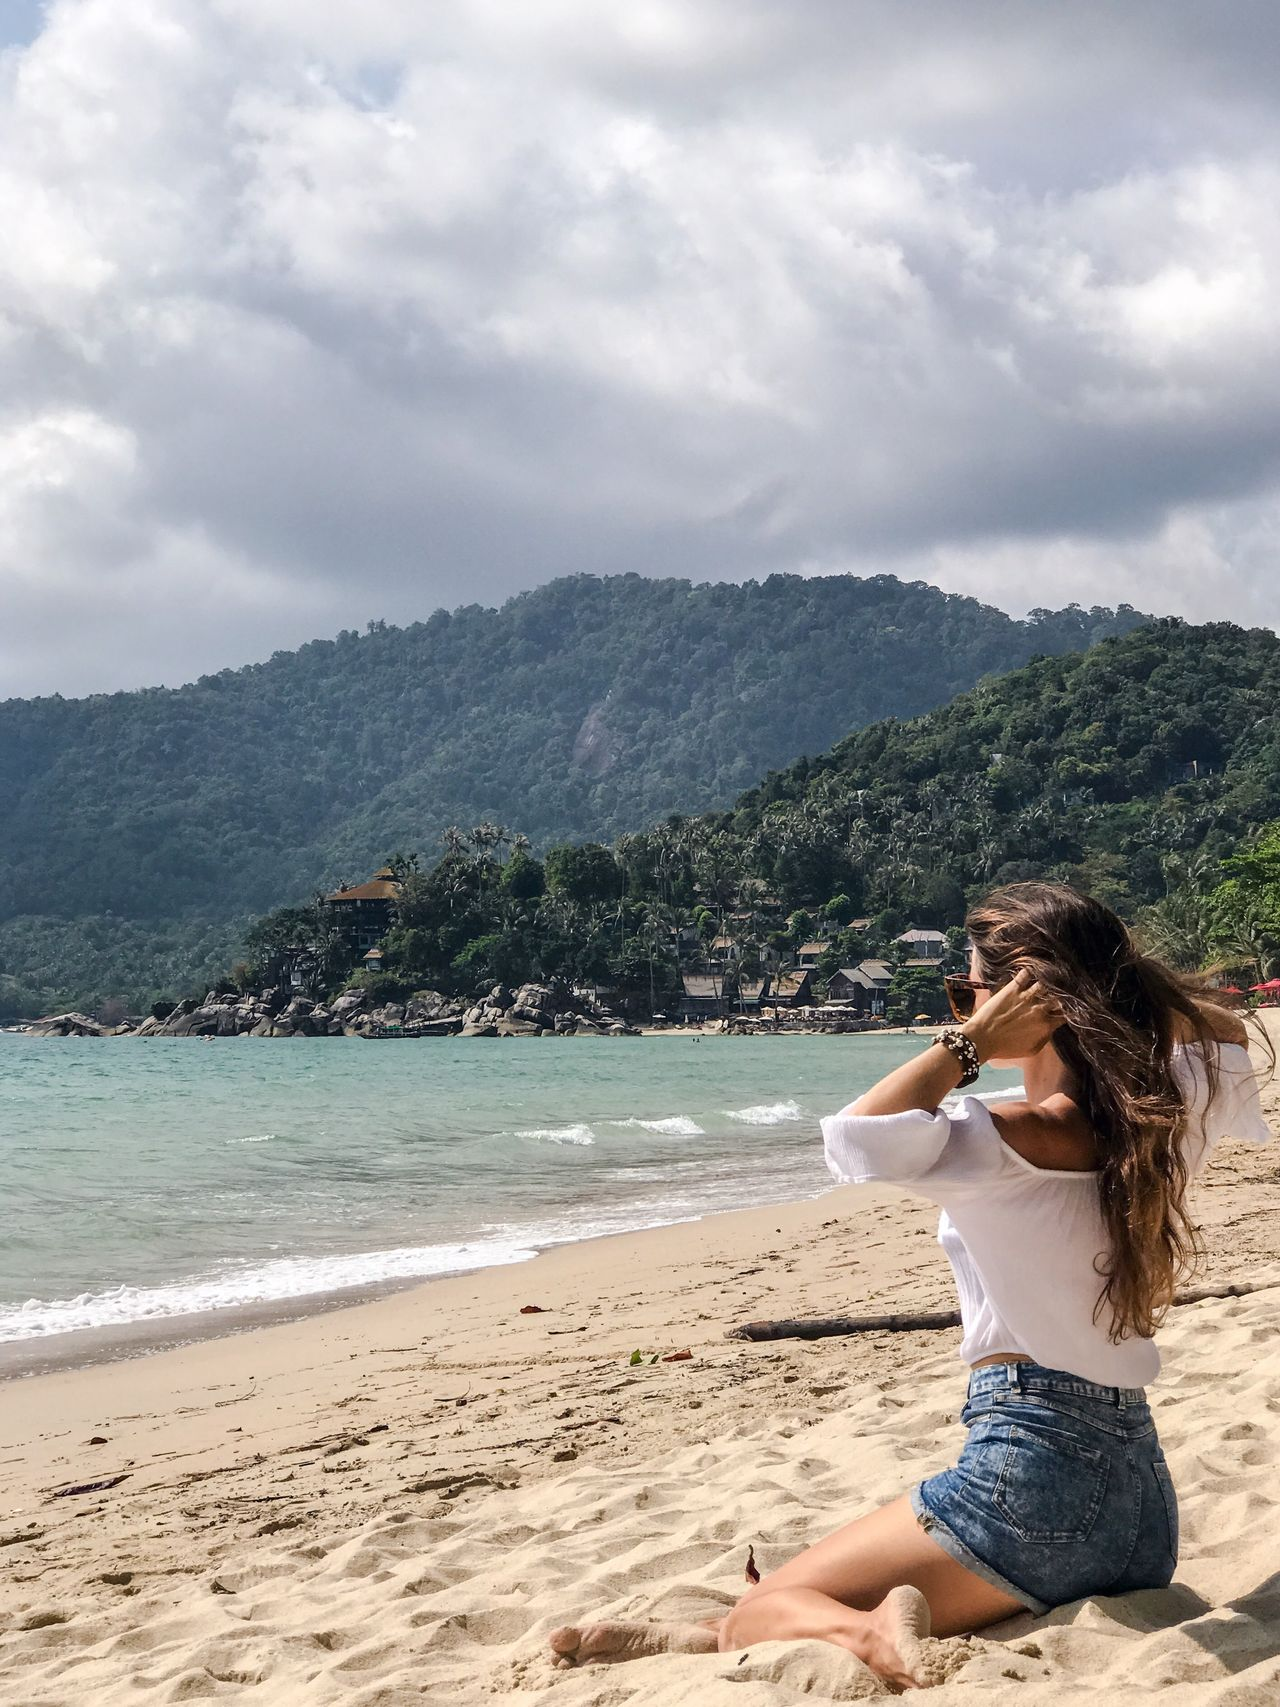 Adults Only Beach Beautiful Woman Beauty Beauty In Nature Cloud - Sky Day Leisure Activity Lifestyles Mountain Nature One Person One Woman Only Only Women Outdoors People Real People Relaxation Sand Sitting Sky Travel Destinations Tree Vacations Water